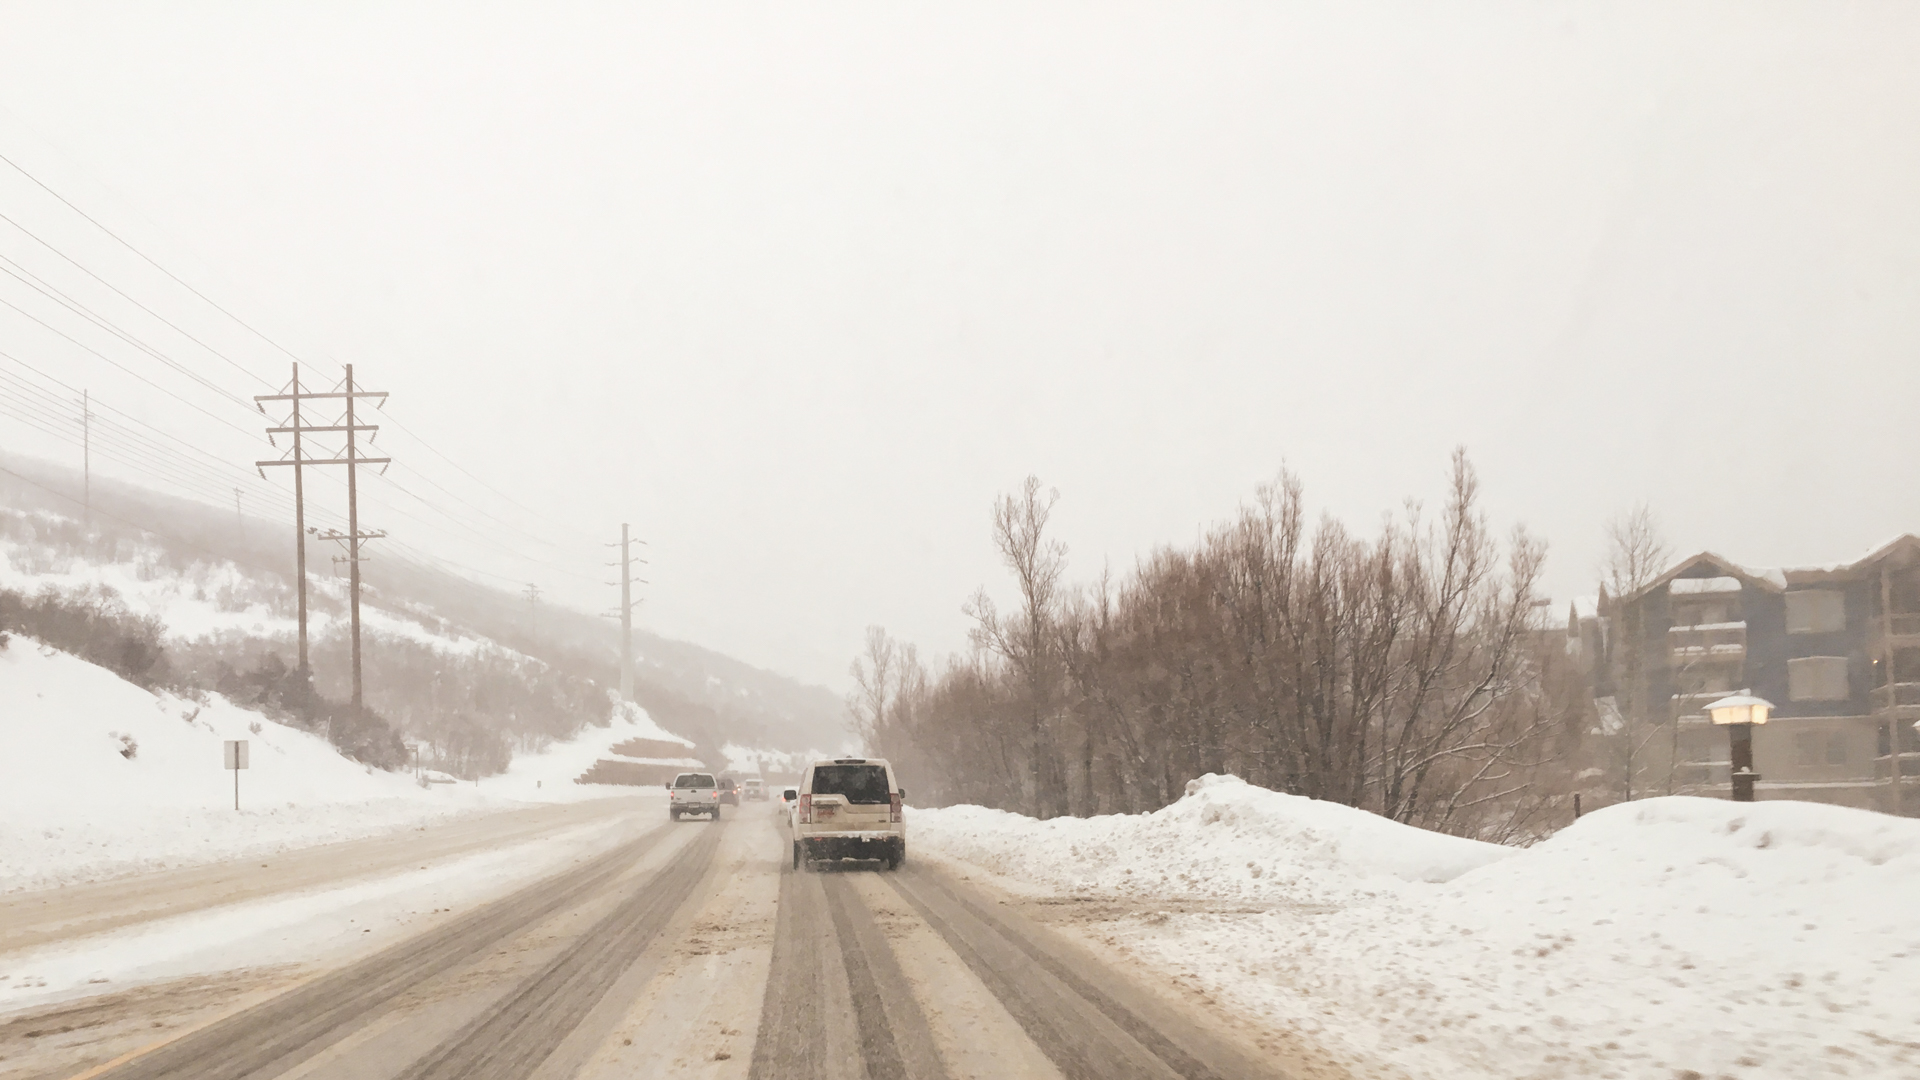 road travel to the mountain for a day of skiing